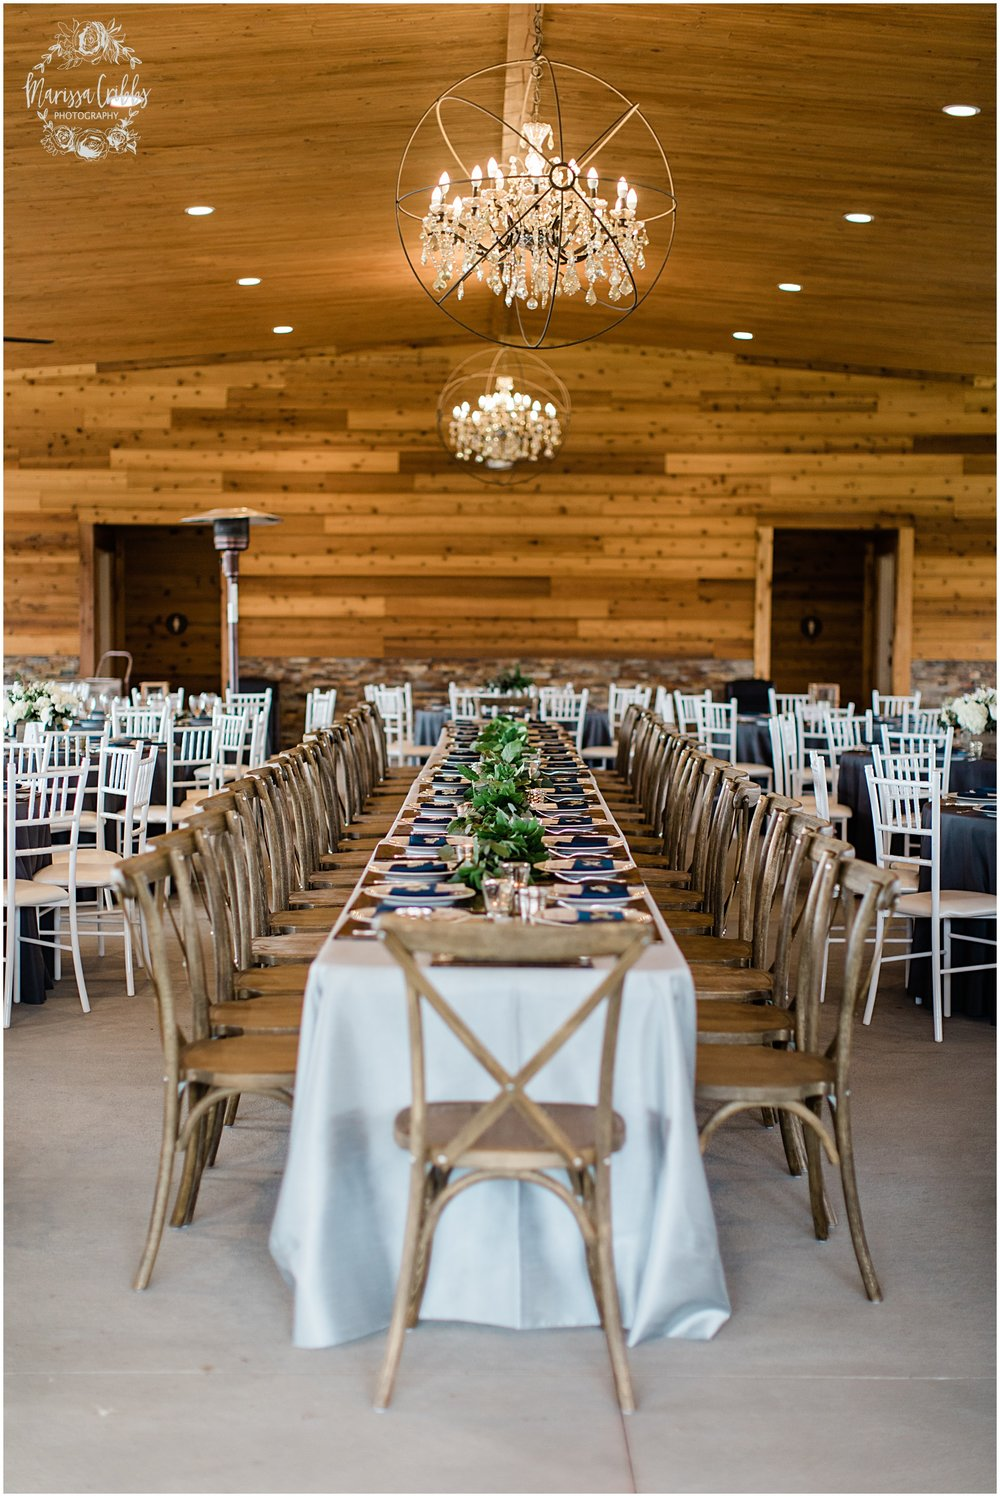 TILSON WEDDING | THE LEGACY AT GREEN HILLS | SIMPLE ELEGANCE | MARISSA CRIBBS PHOTOGRAPHY_4748.jpg